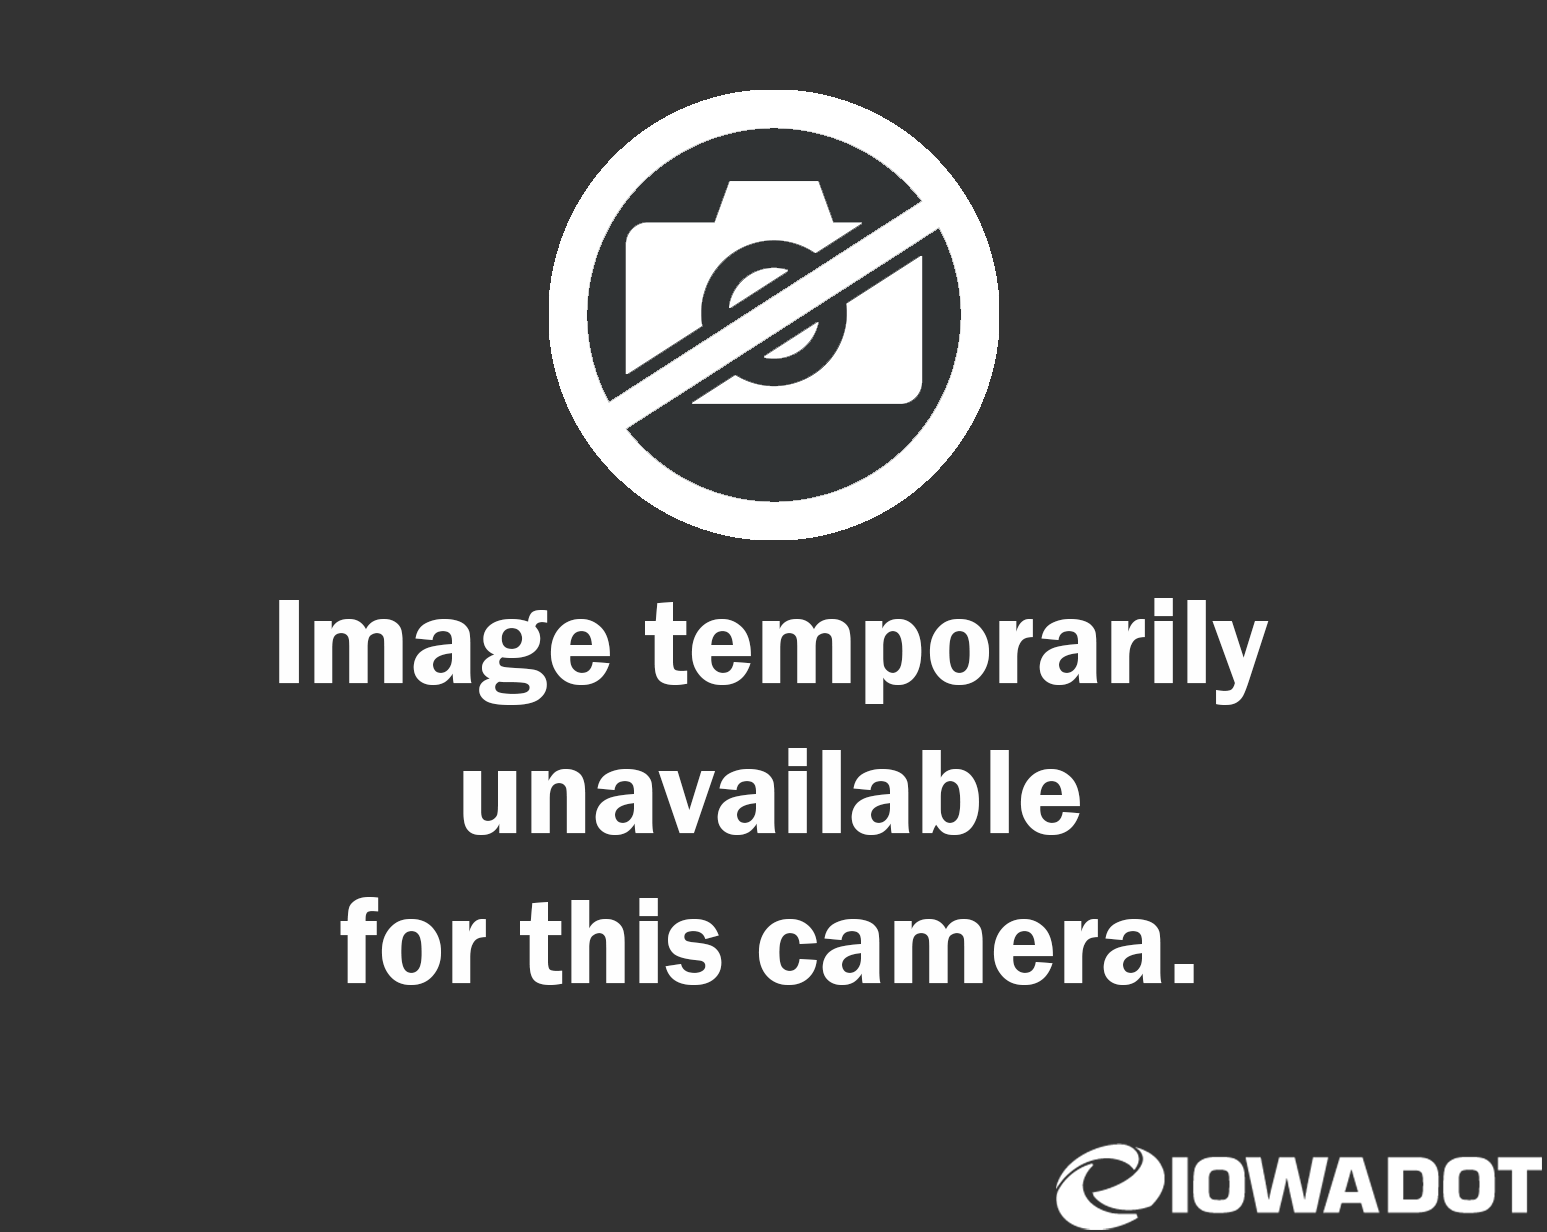 camera snapshot for 6L - I-74 @ South of 7th Ave IL (IWZ 3709)